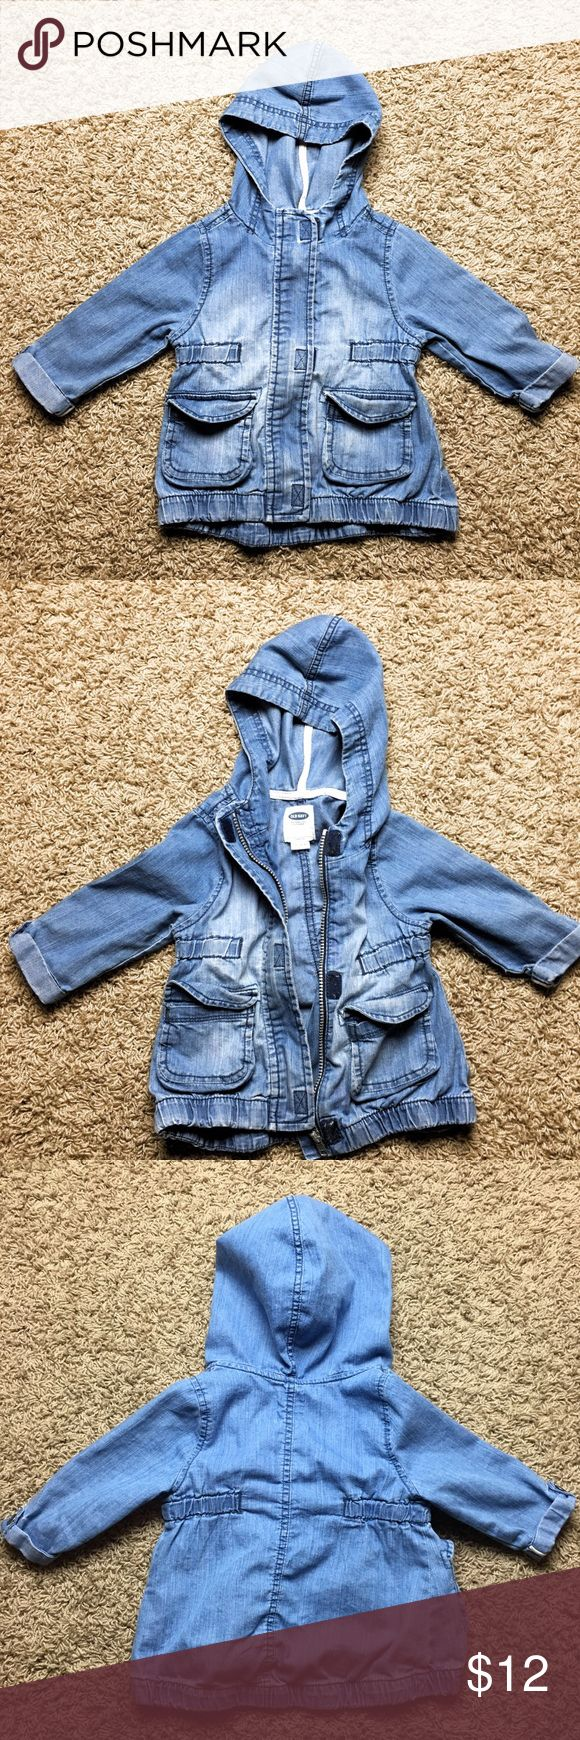 light weight hooded jean jacket Light weight hooded jean jacket. Zips and velcros.  Longer, with elastic sides to give it an adorable shape on your little one. Old Navy Jackets & Coats